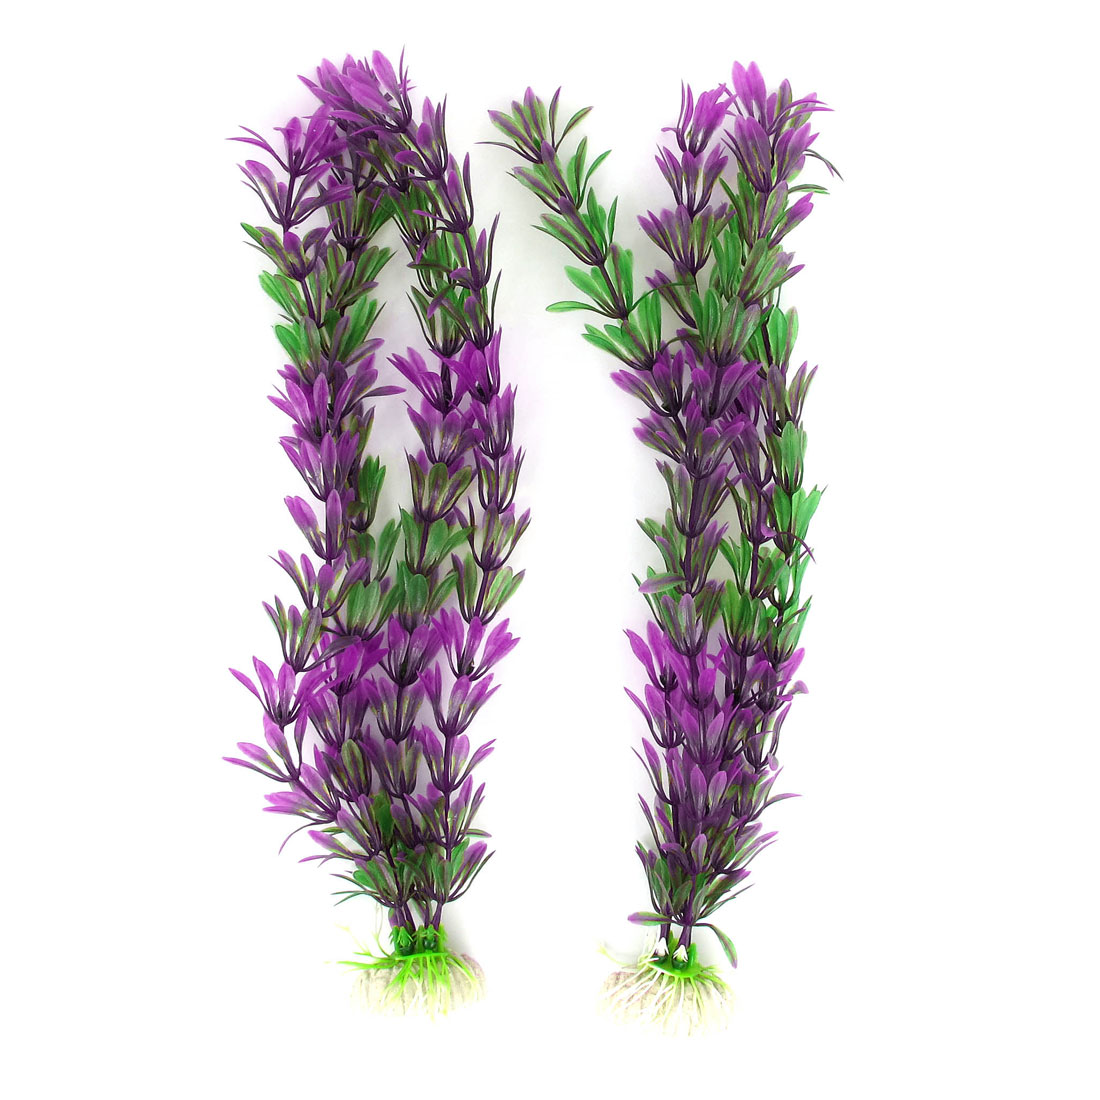 2 Pcs 32cm Height Green Purple Plastic Water Plant Decor for Fish Tank